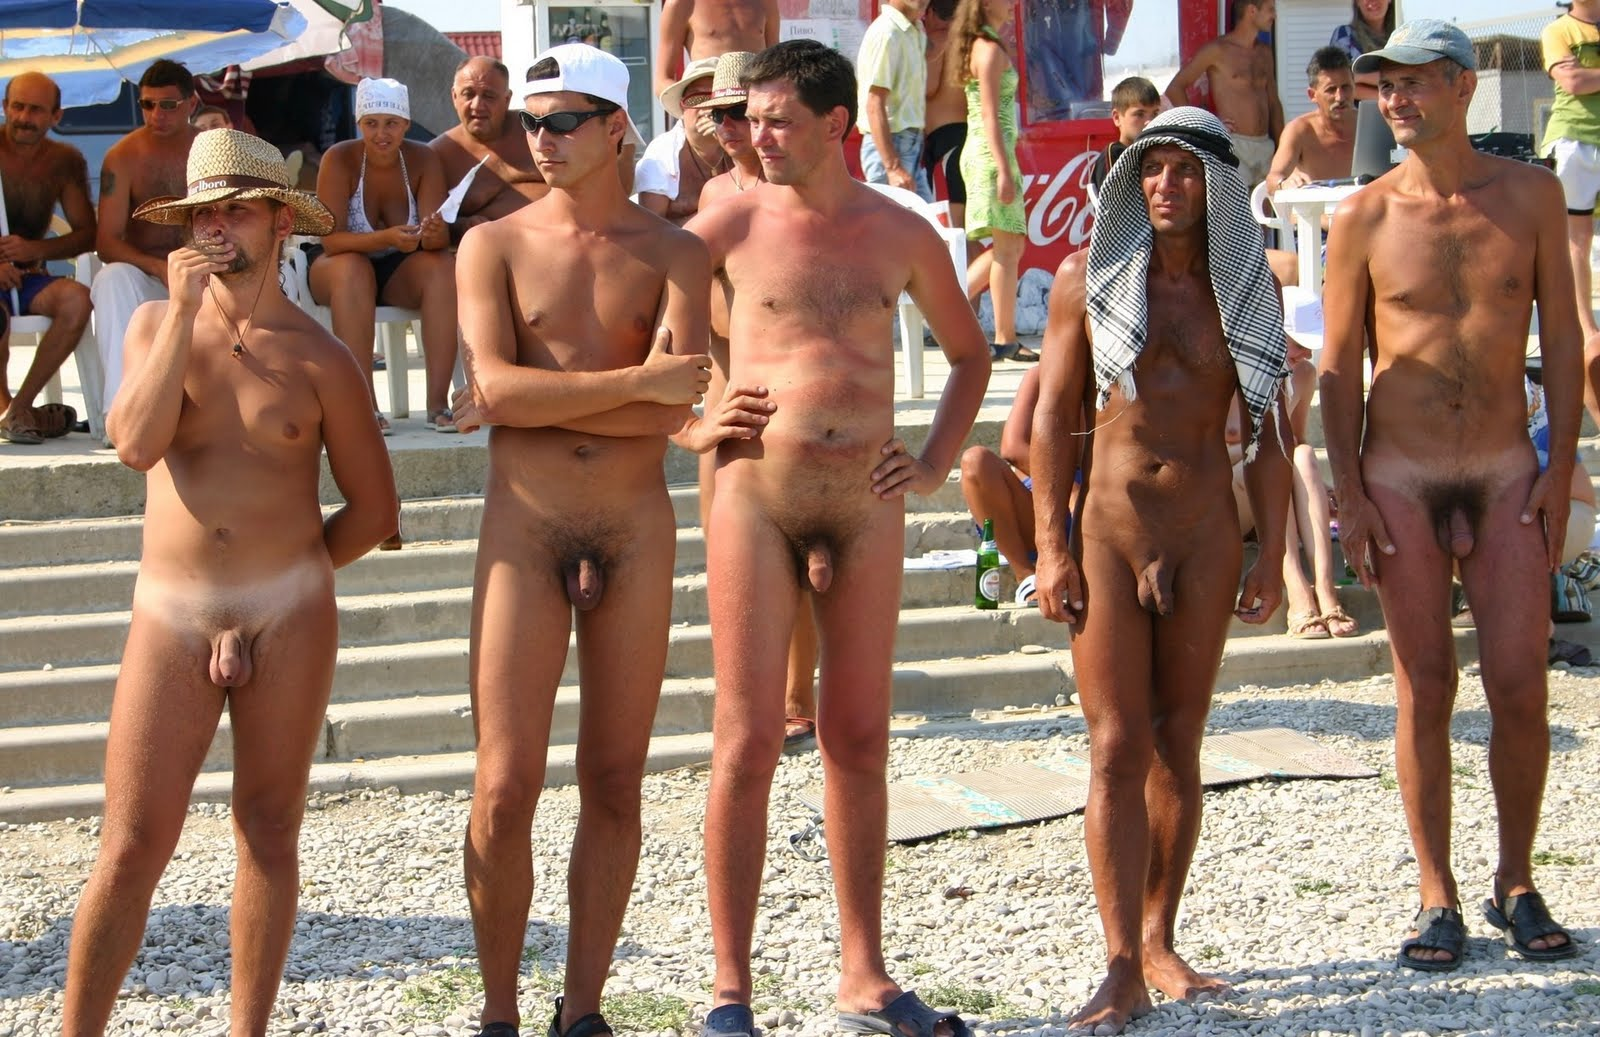 Can help Amature male nude pageant consider